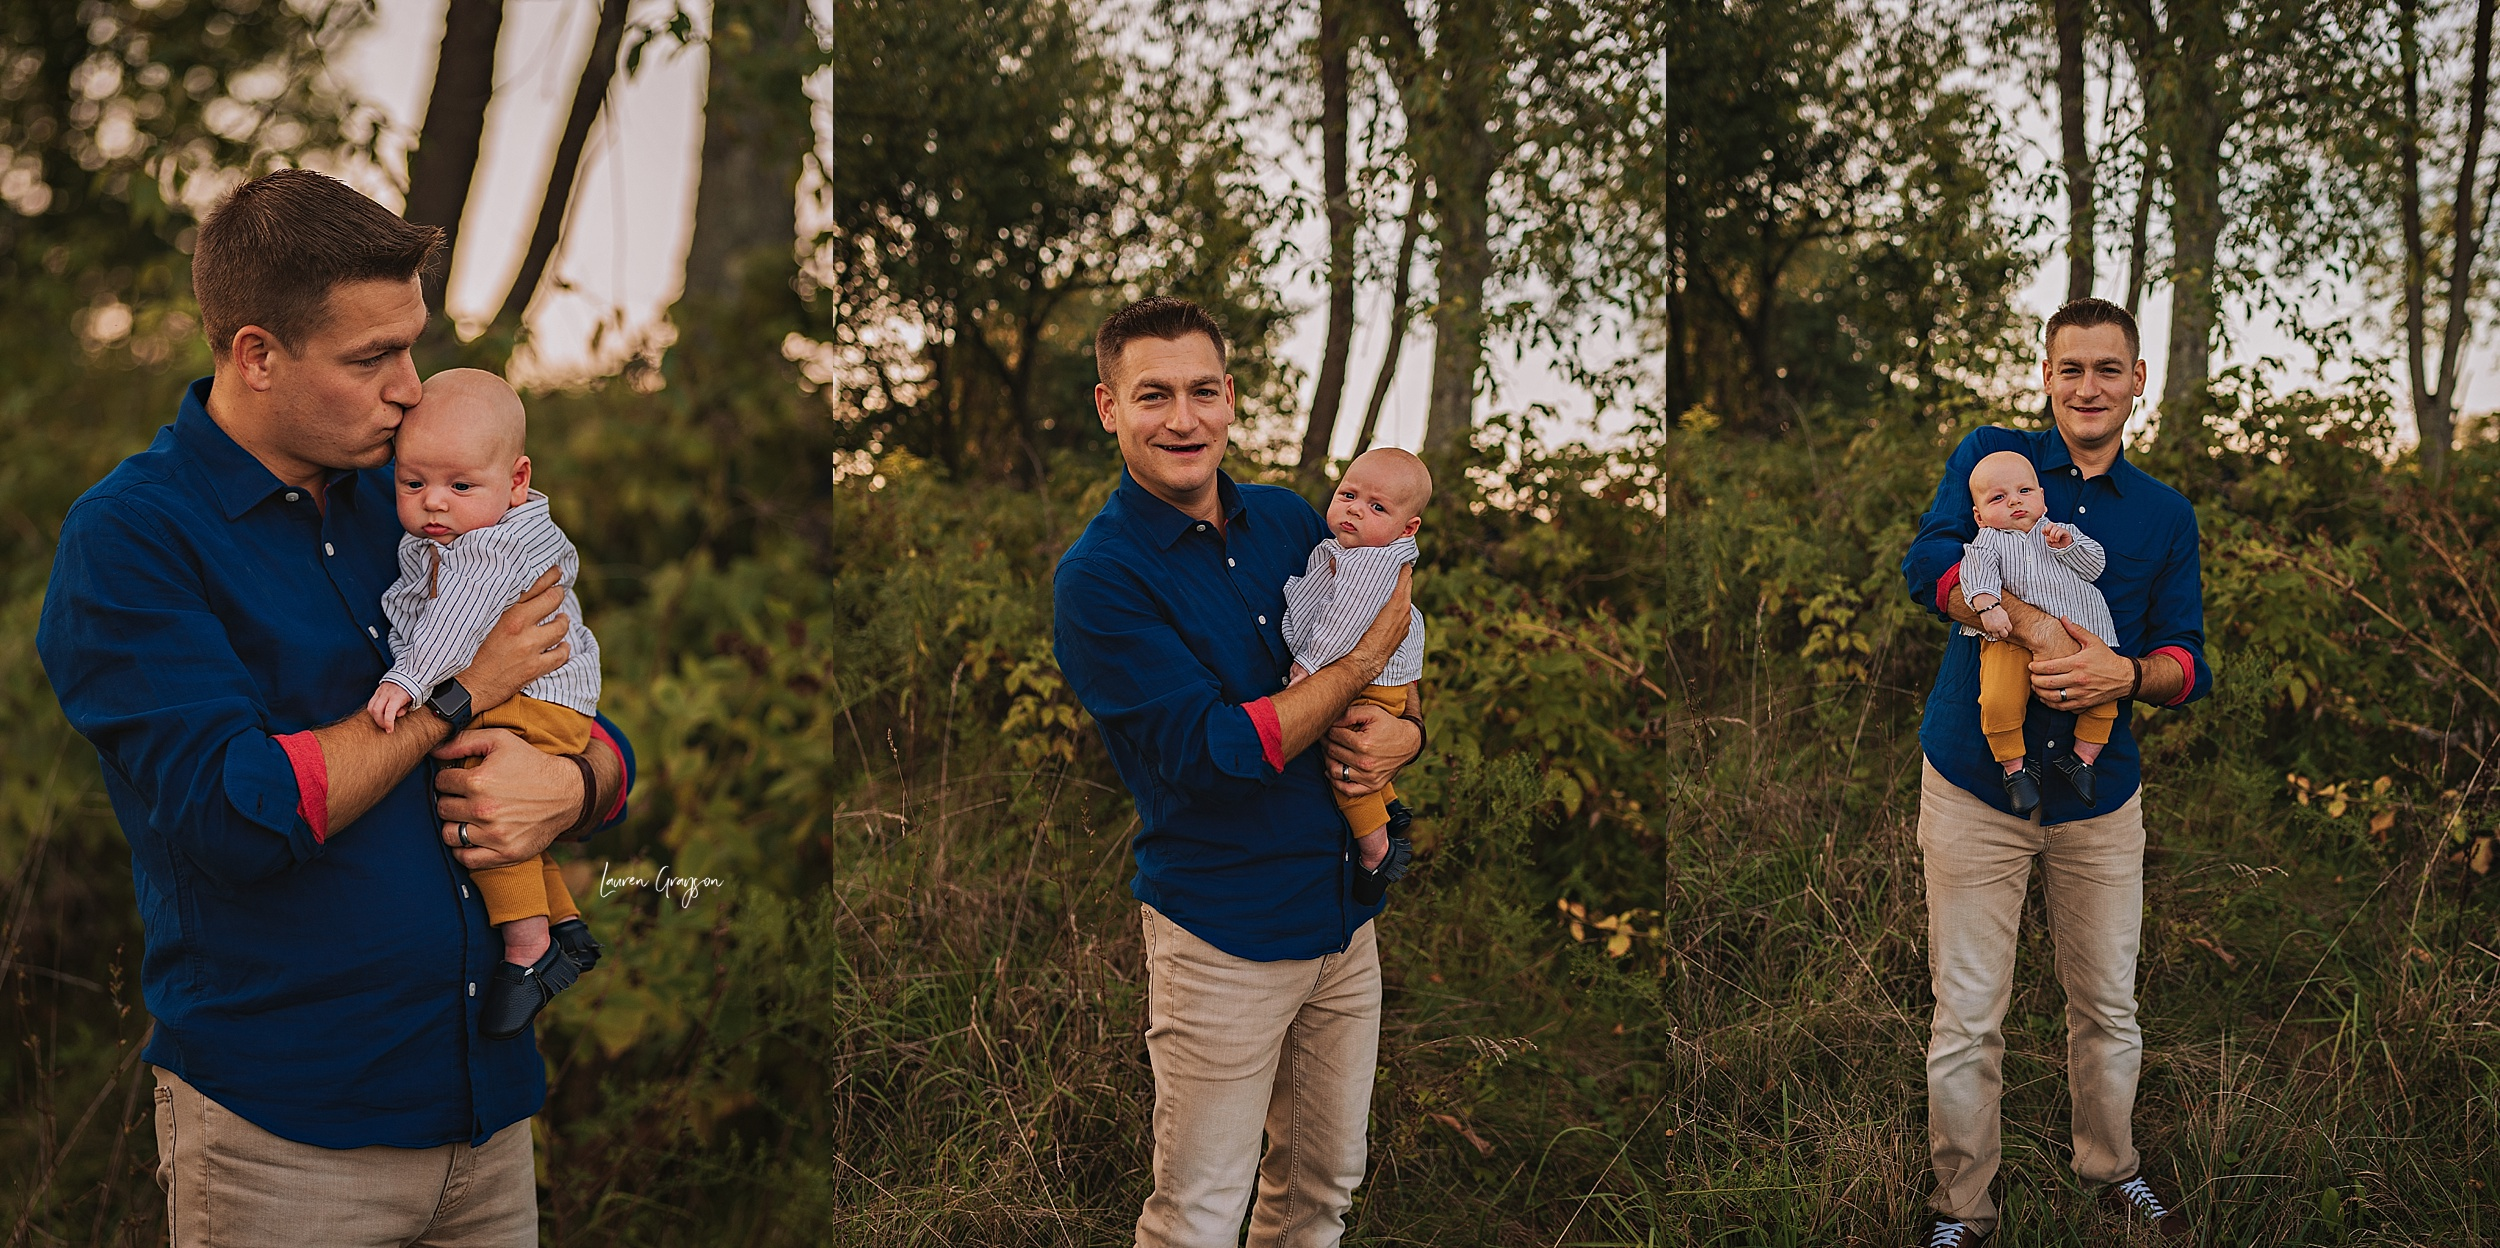 lauren-grayson-photography-cleveland-ohio-photographer-AKRON-family-photos-springfield-bog-cullin-first-birthday_0831.jpg